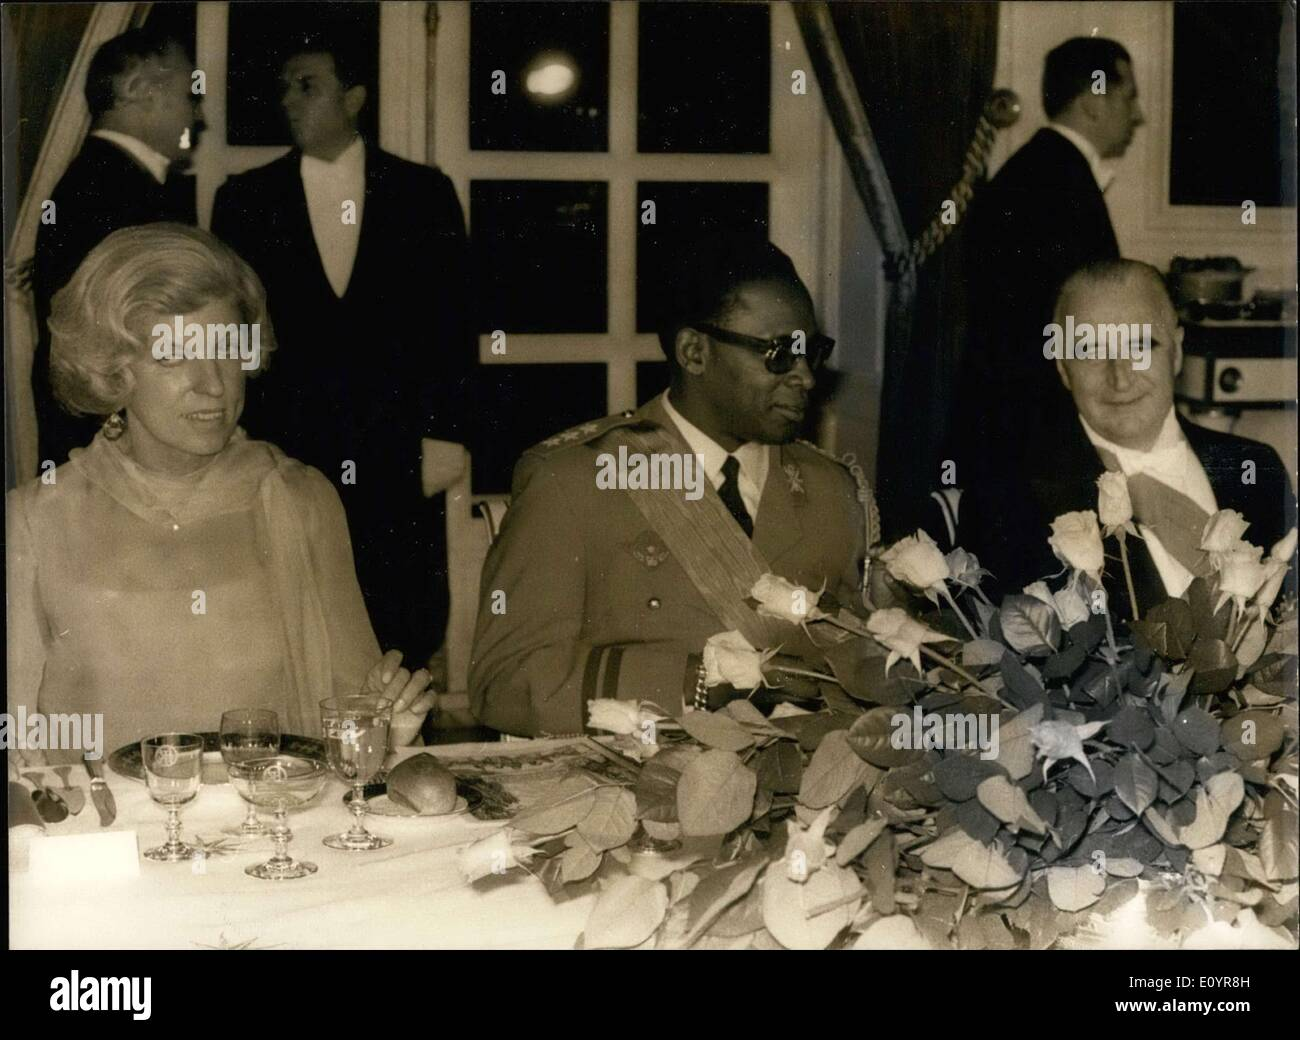 Mar. 30, 1971 - On General Mobutu's first day visiting Paris, a dinner at the Grand Trianon and a play from the Comedie Francaise at the Louis XV Theater at Versailles were offered by President Pompidou and his wife. - Stock Image